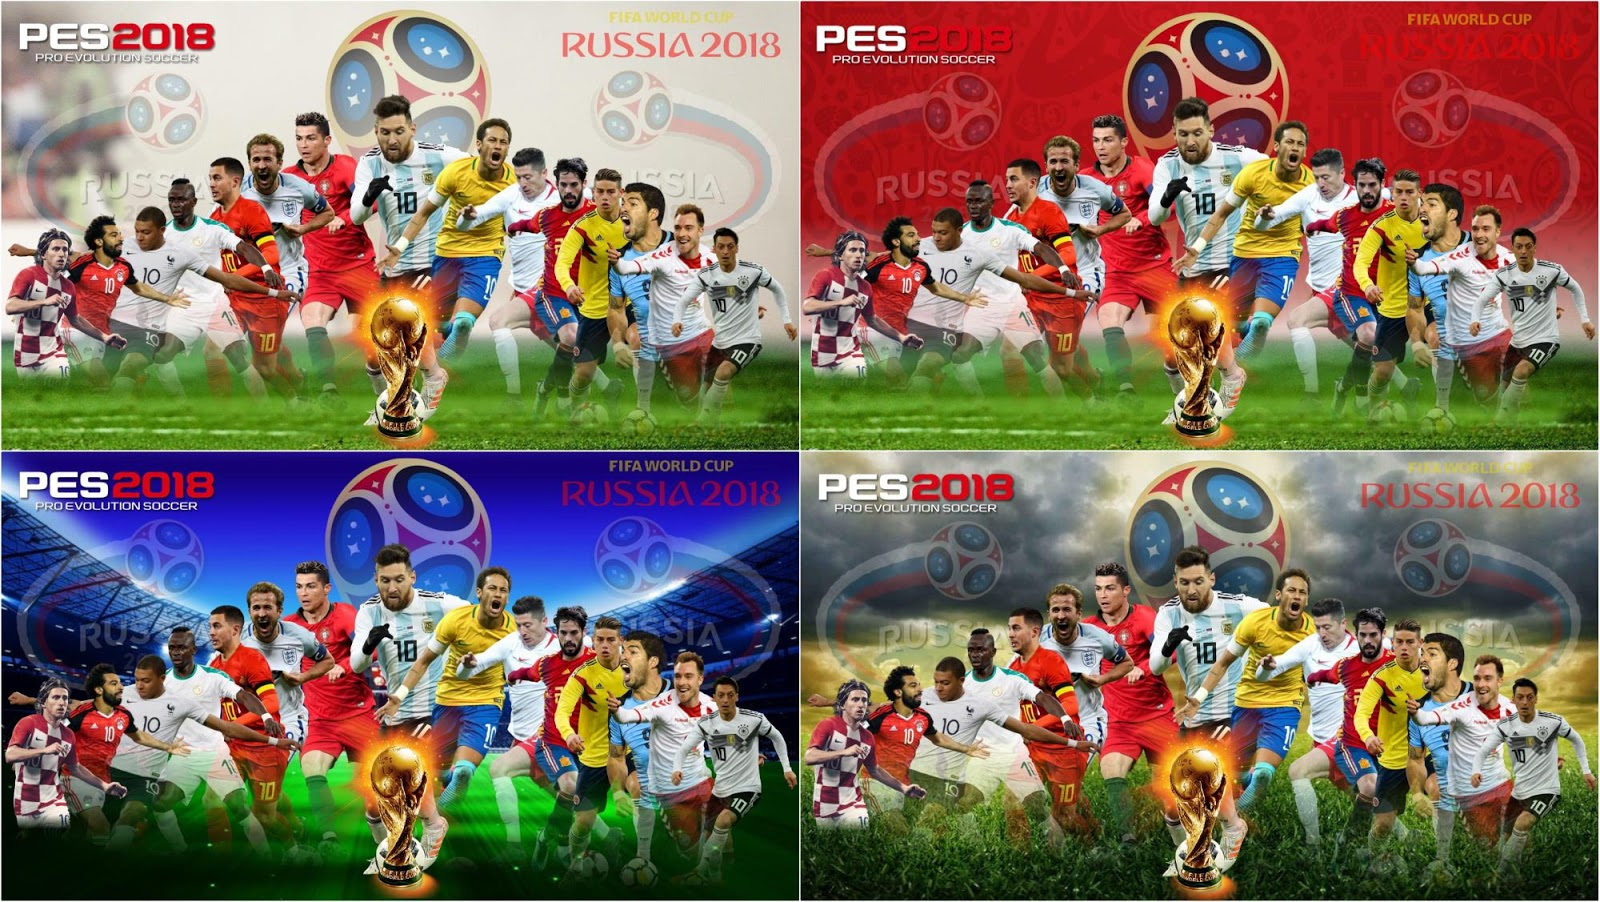 PES 2018 World Cup Start Screens by TRUSTINGOD